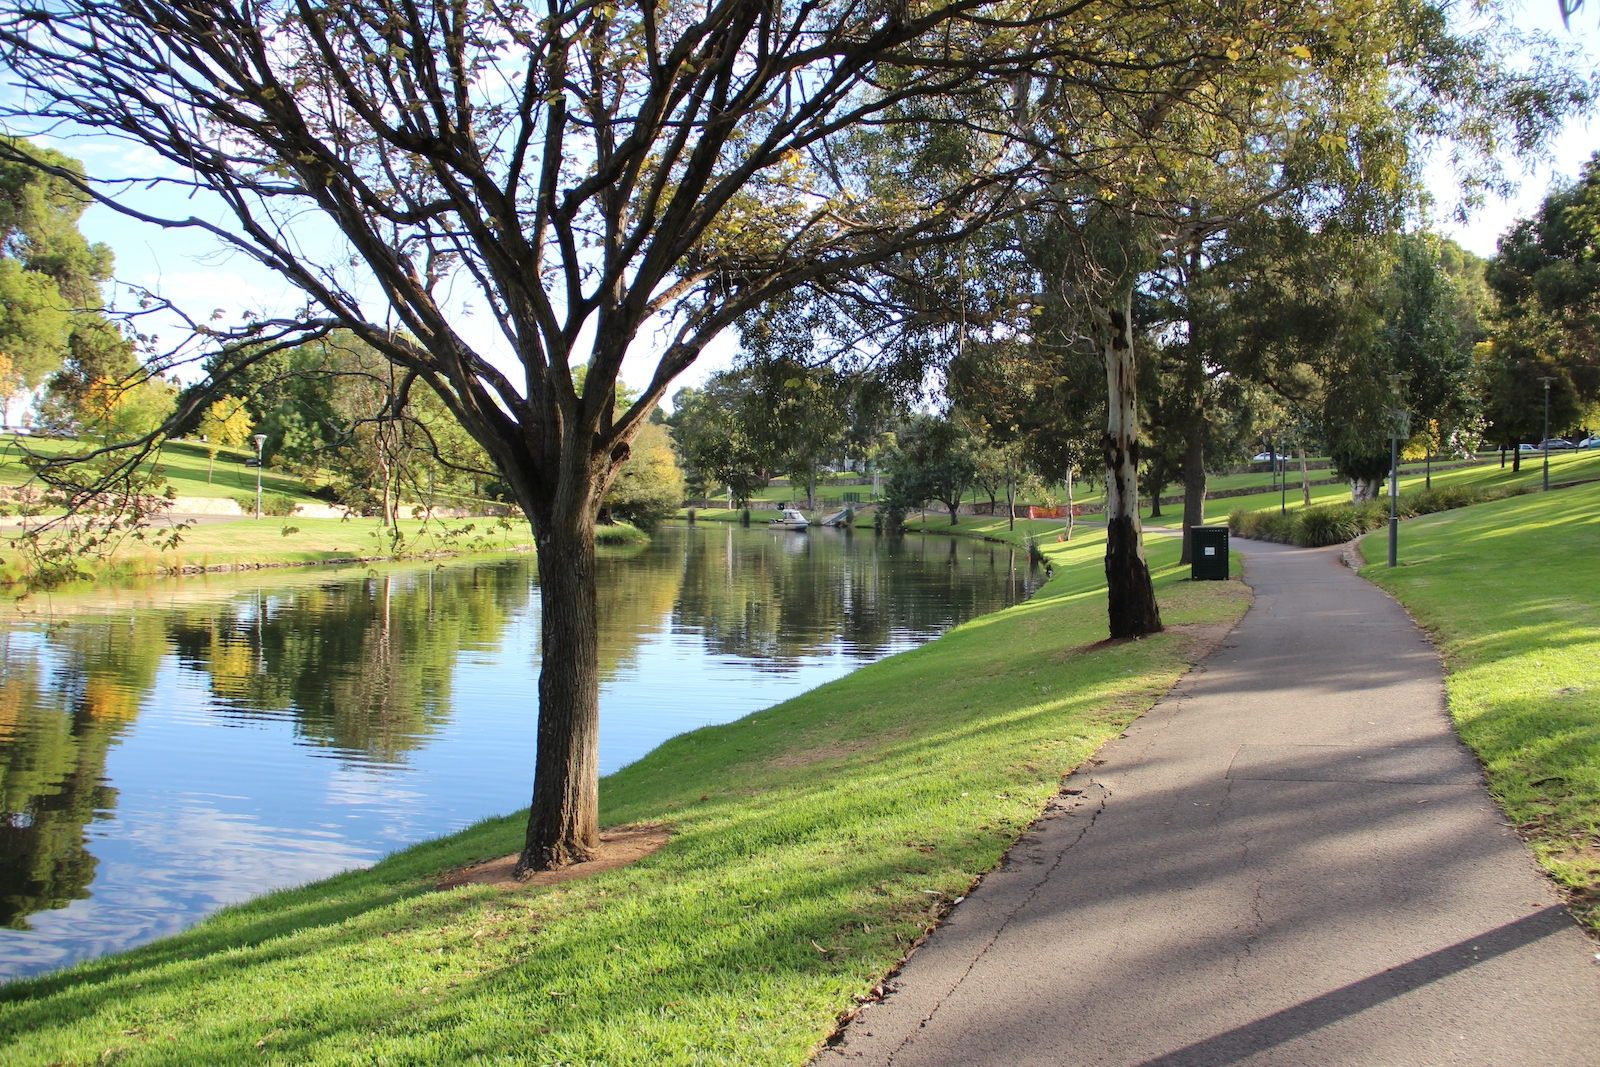 RIVER TORRENS RECOVERY PROJECT - Green Adelaide